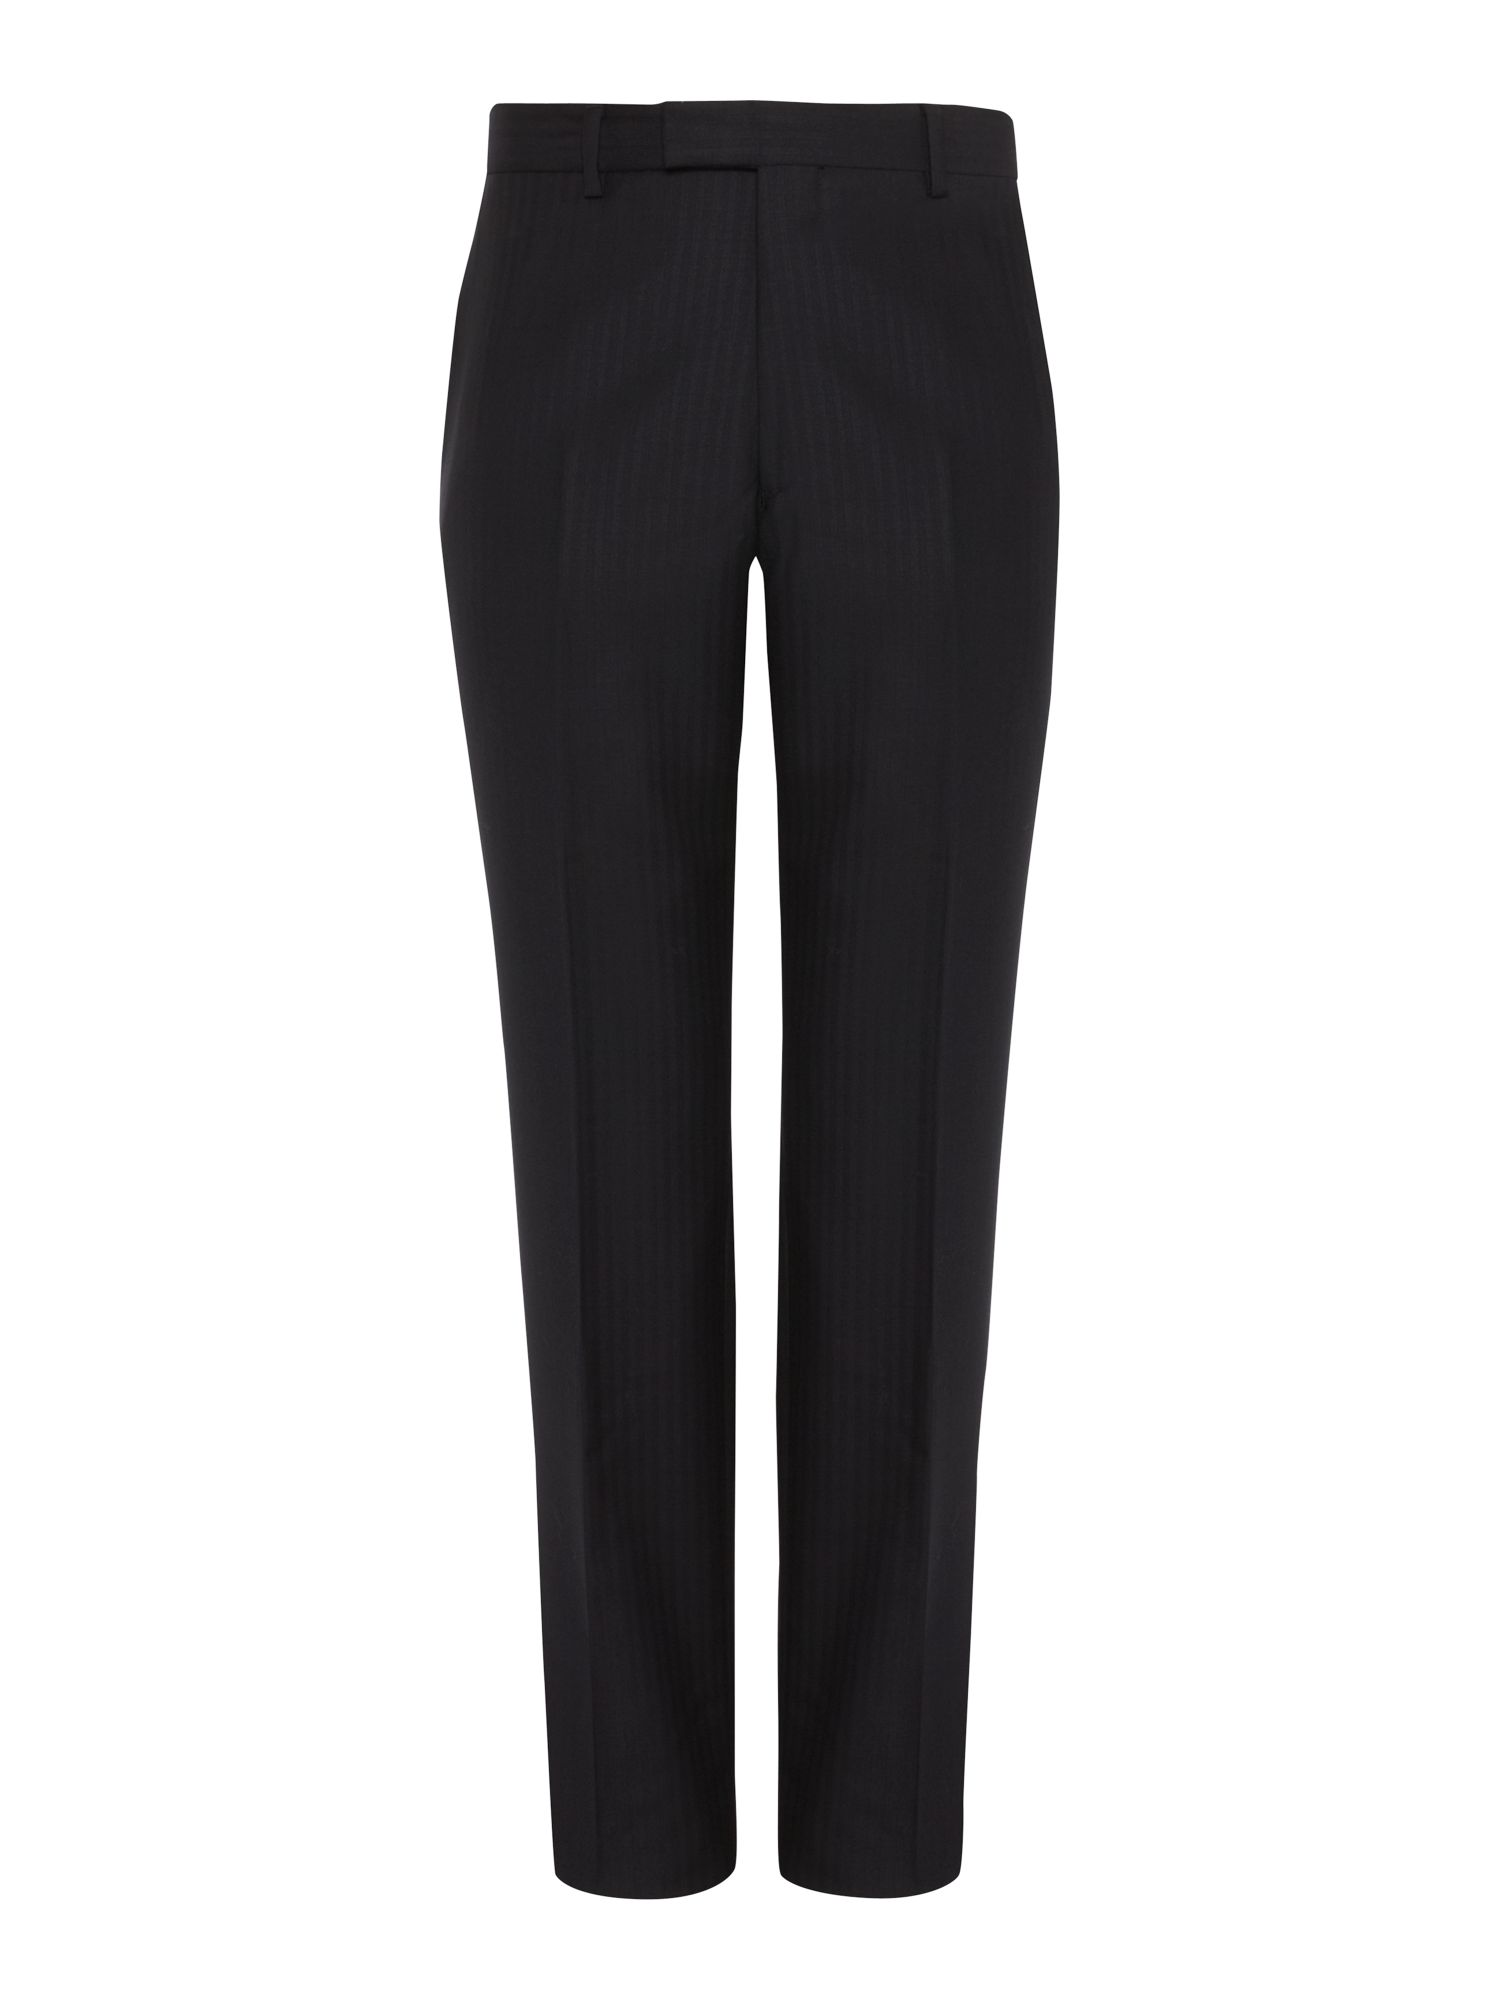 Herringbone formal tailored suit trousers